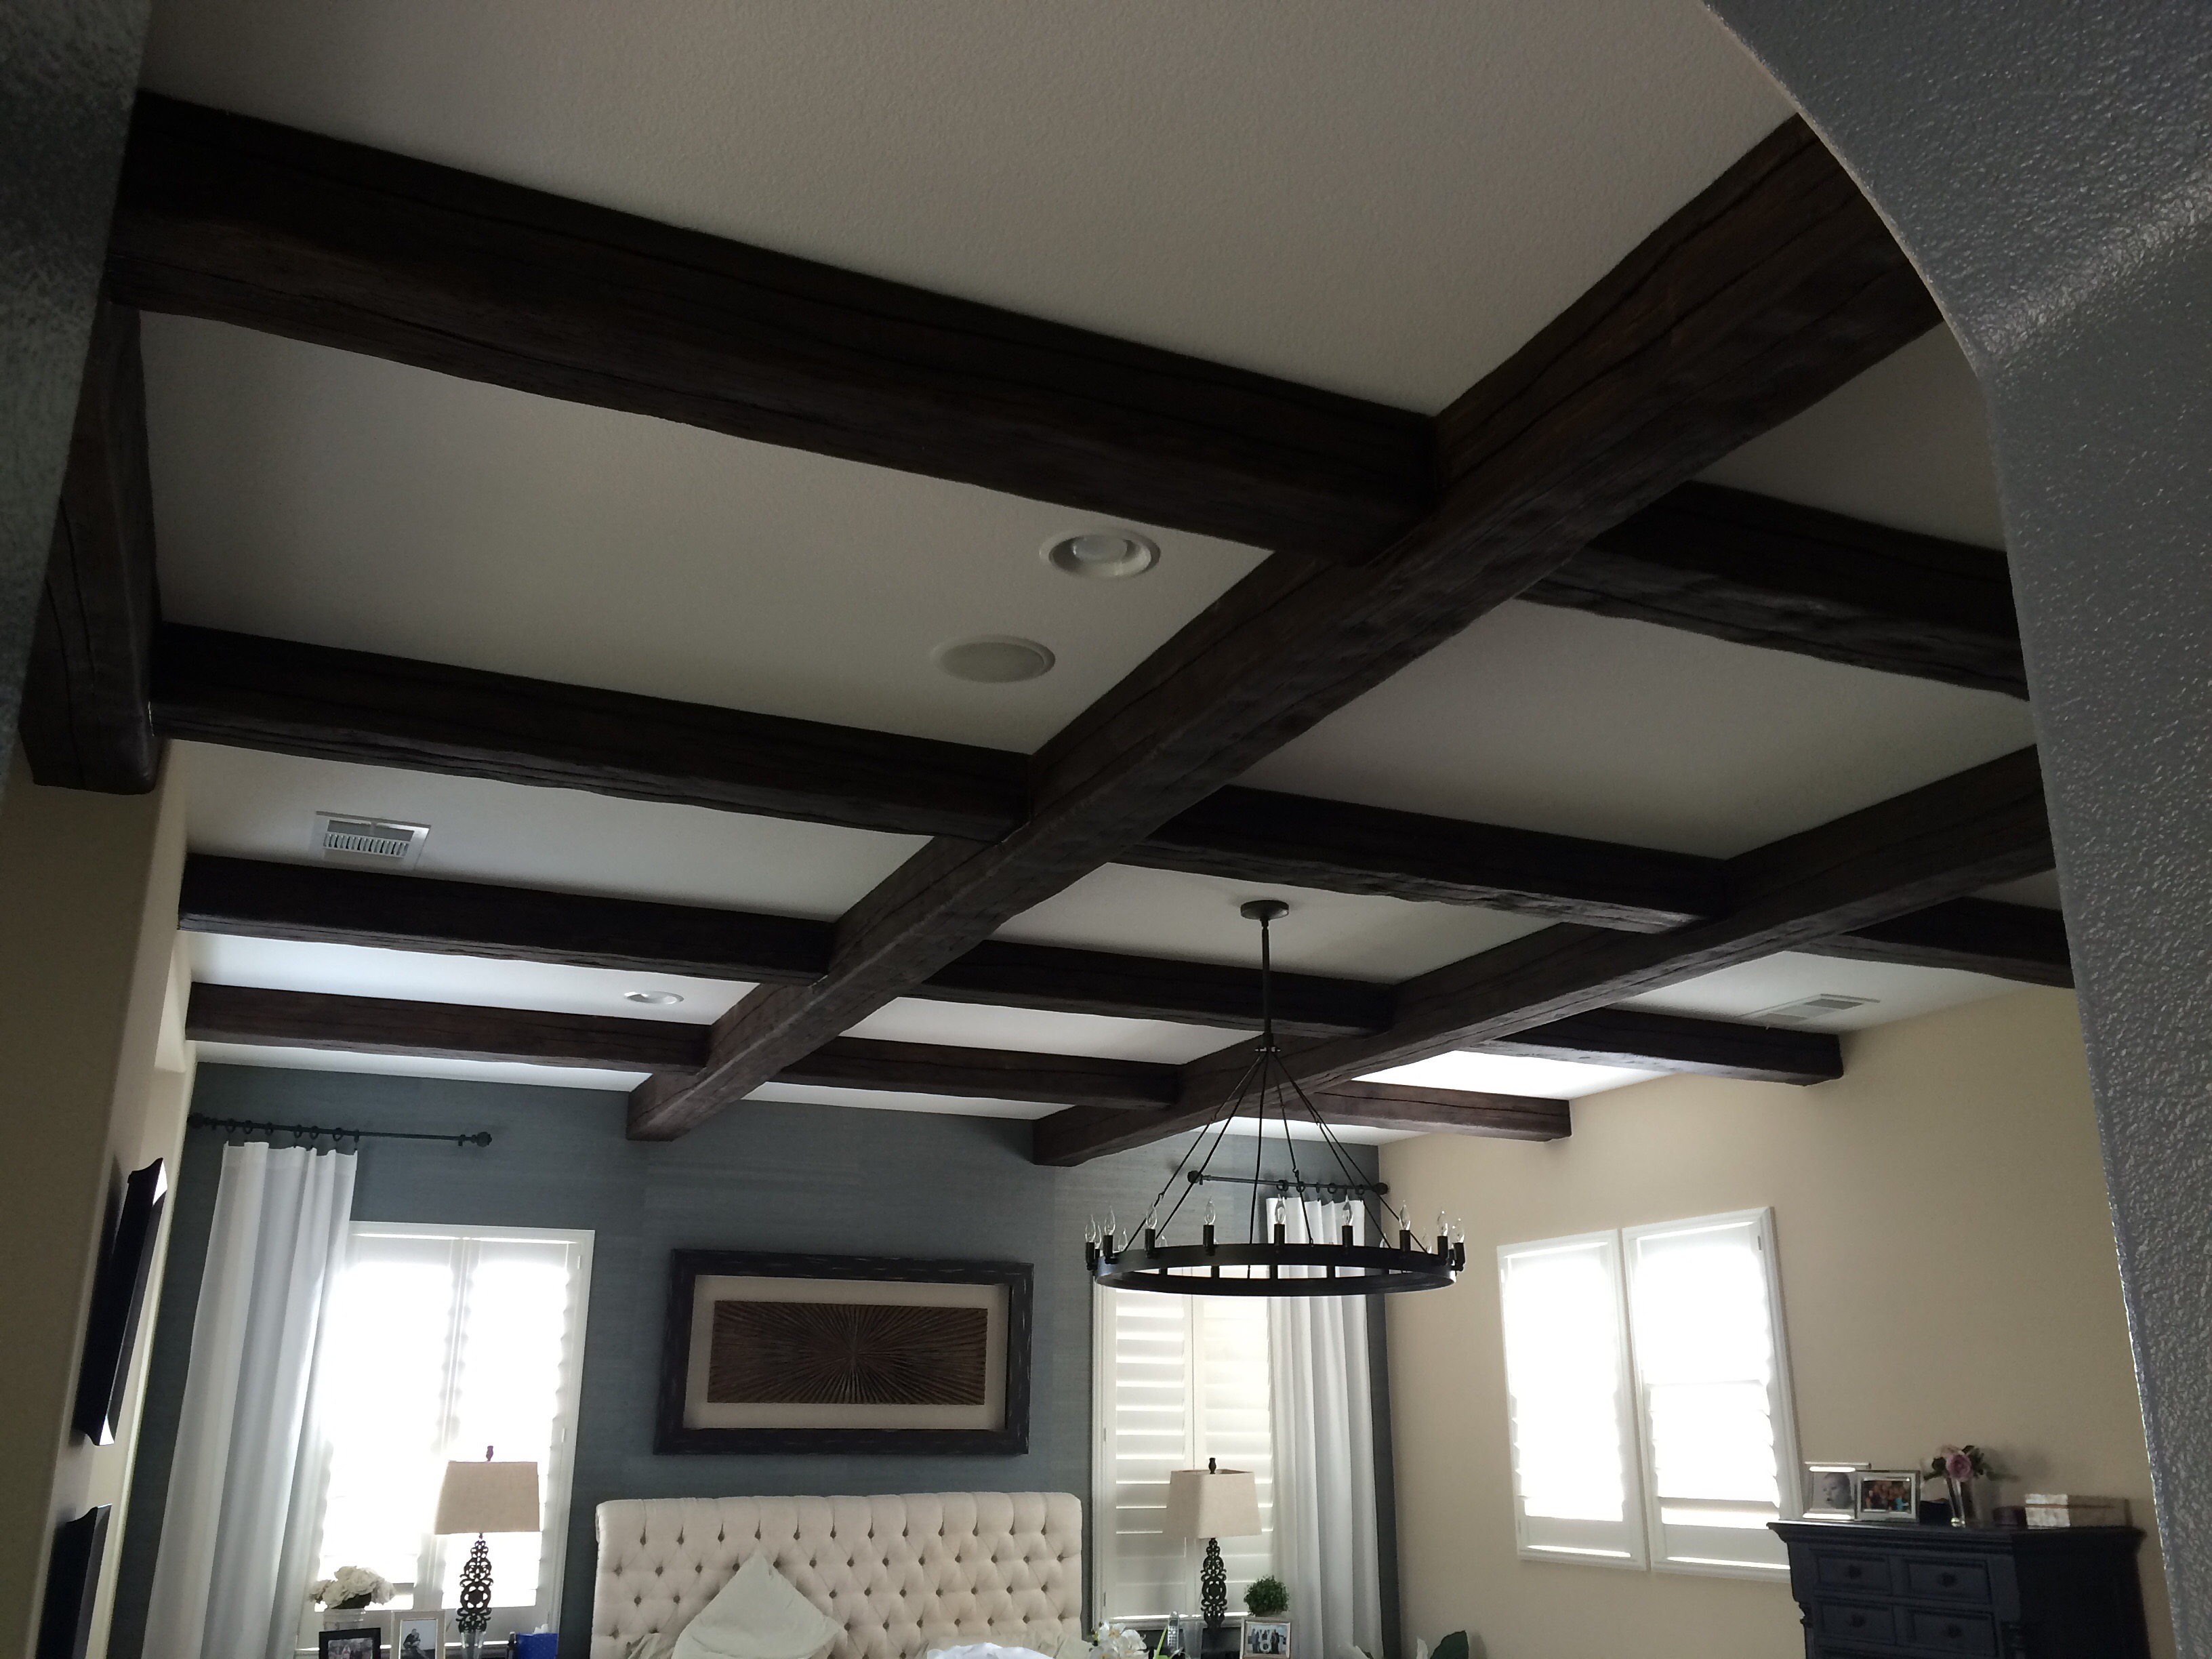 tulum ceiling decorative smsender faux beams co making ceilings